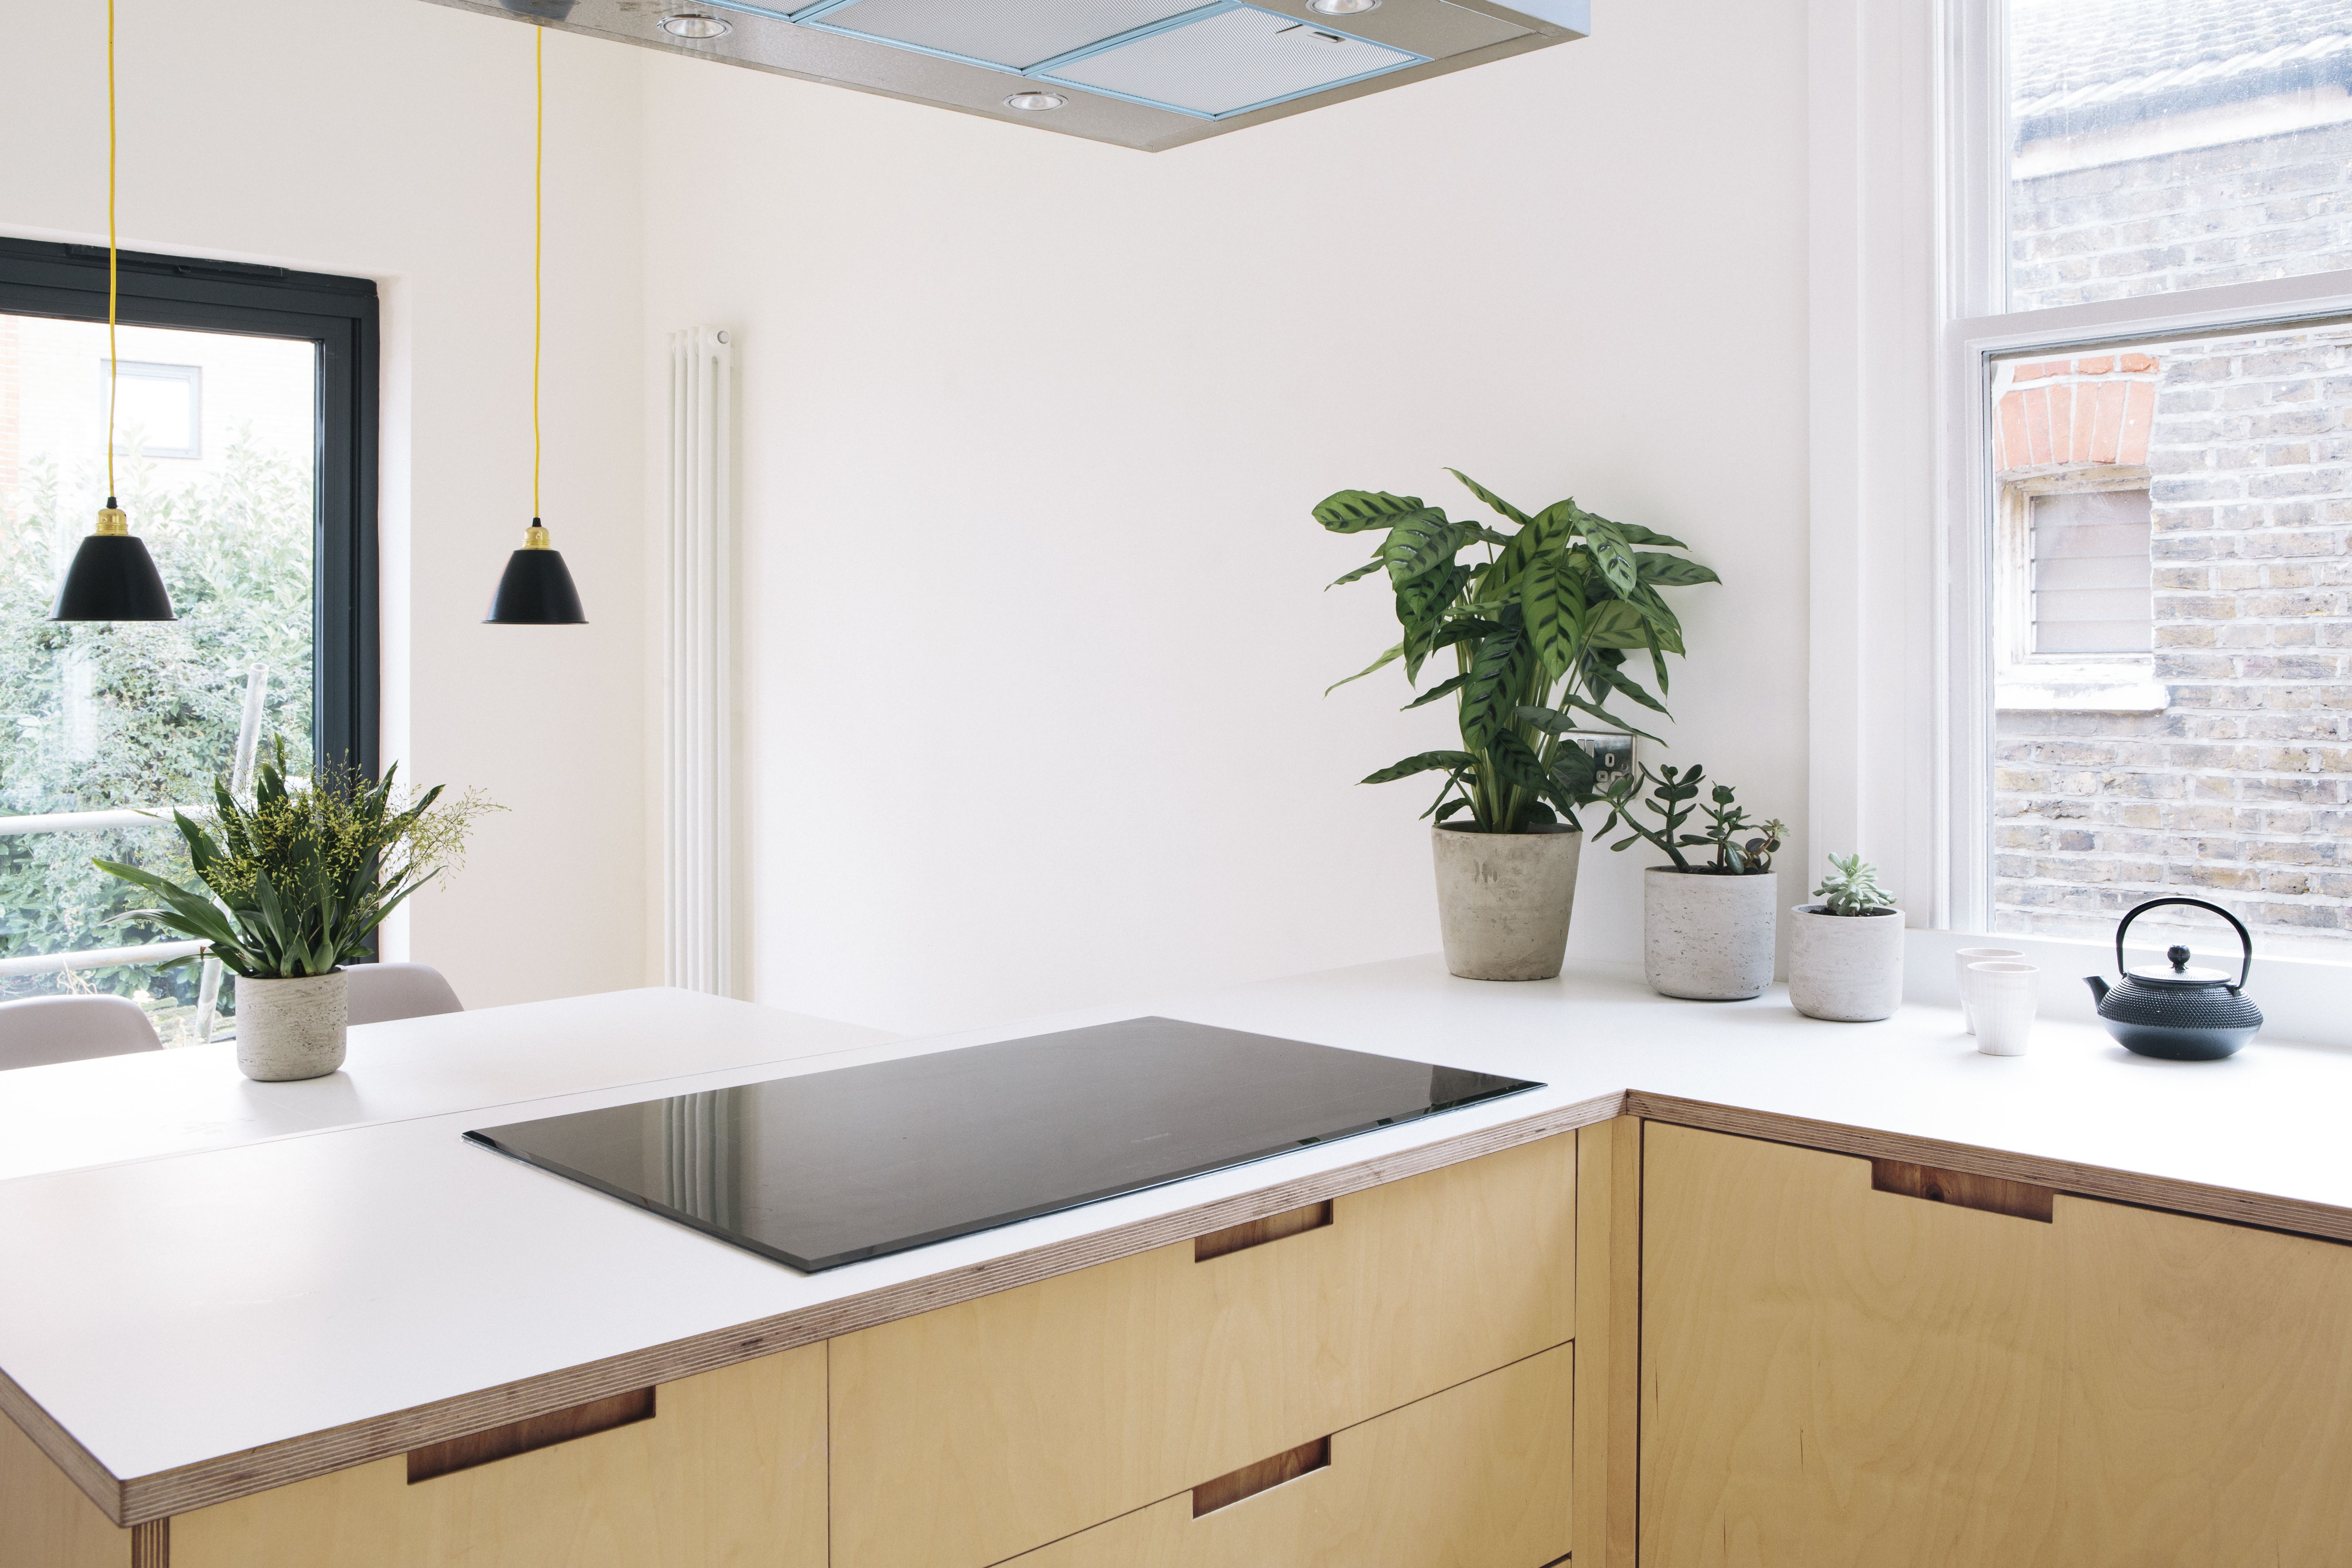 Plywood and Formica Kitchen in 2020 Simple kitchen